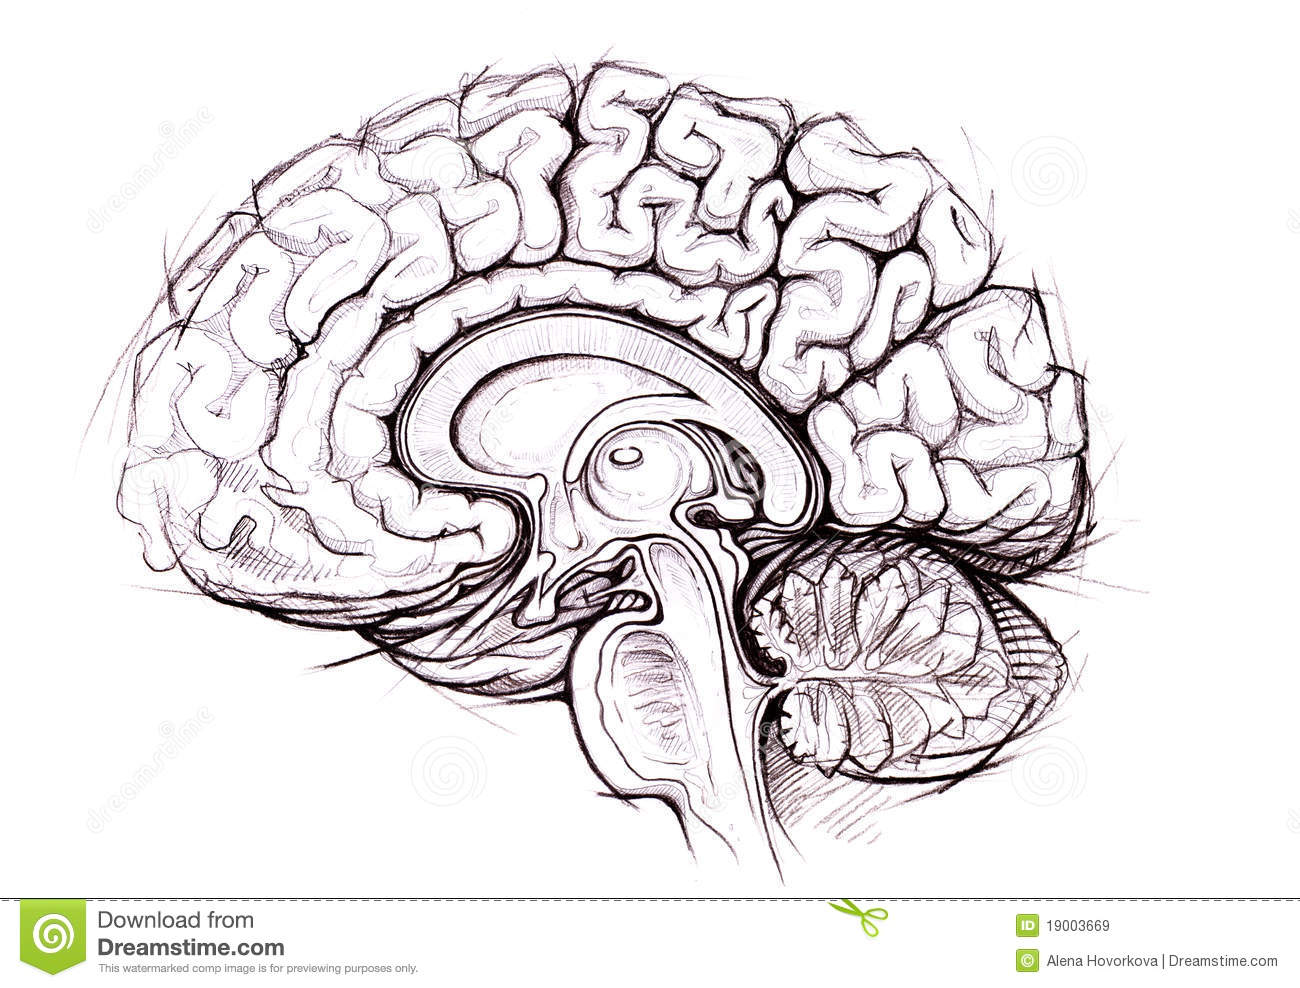 right lateral brain diagram smart car headlight wiring pencil skethy study of human royalty free stock